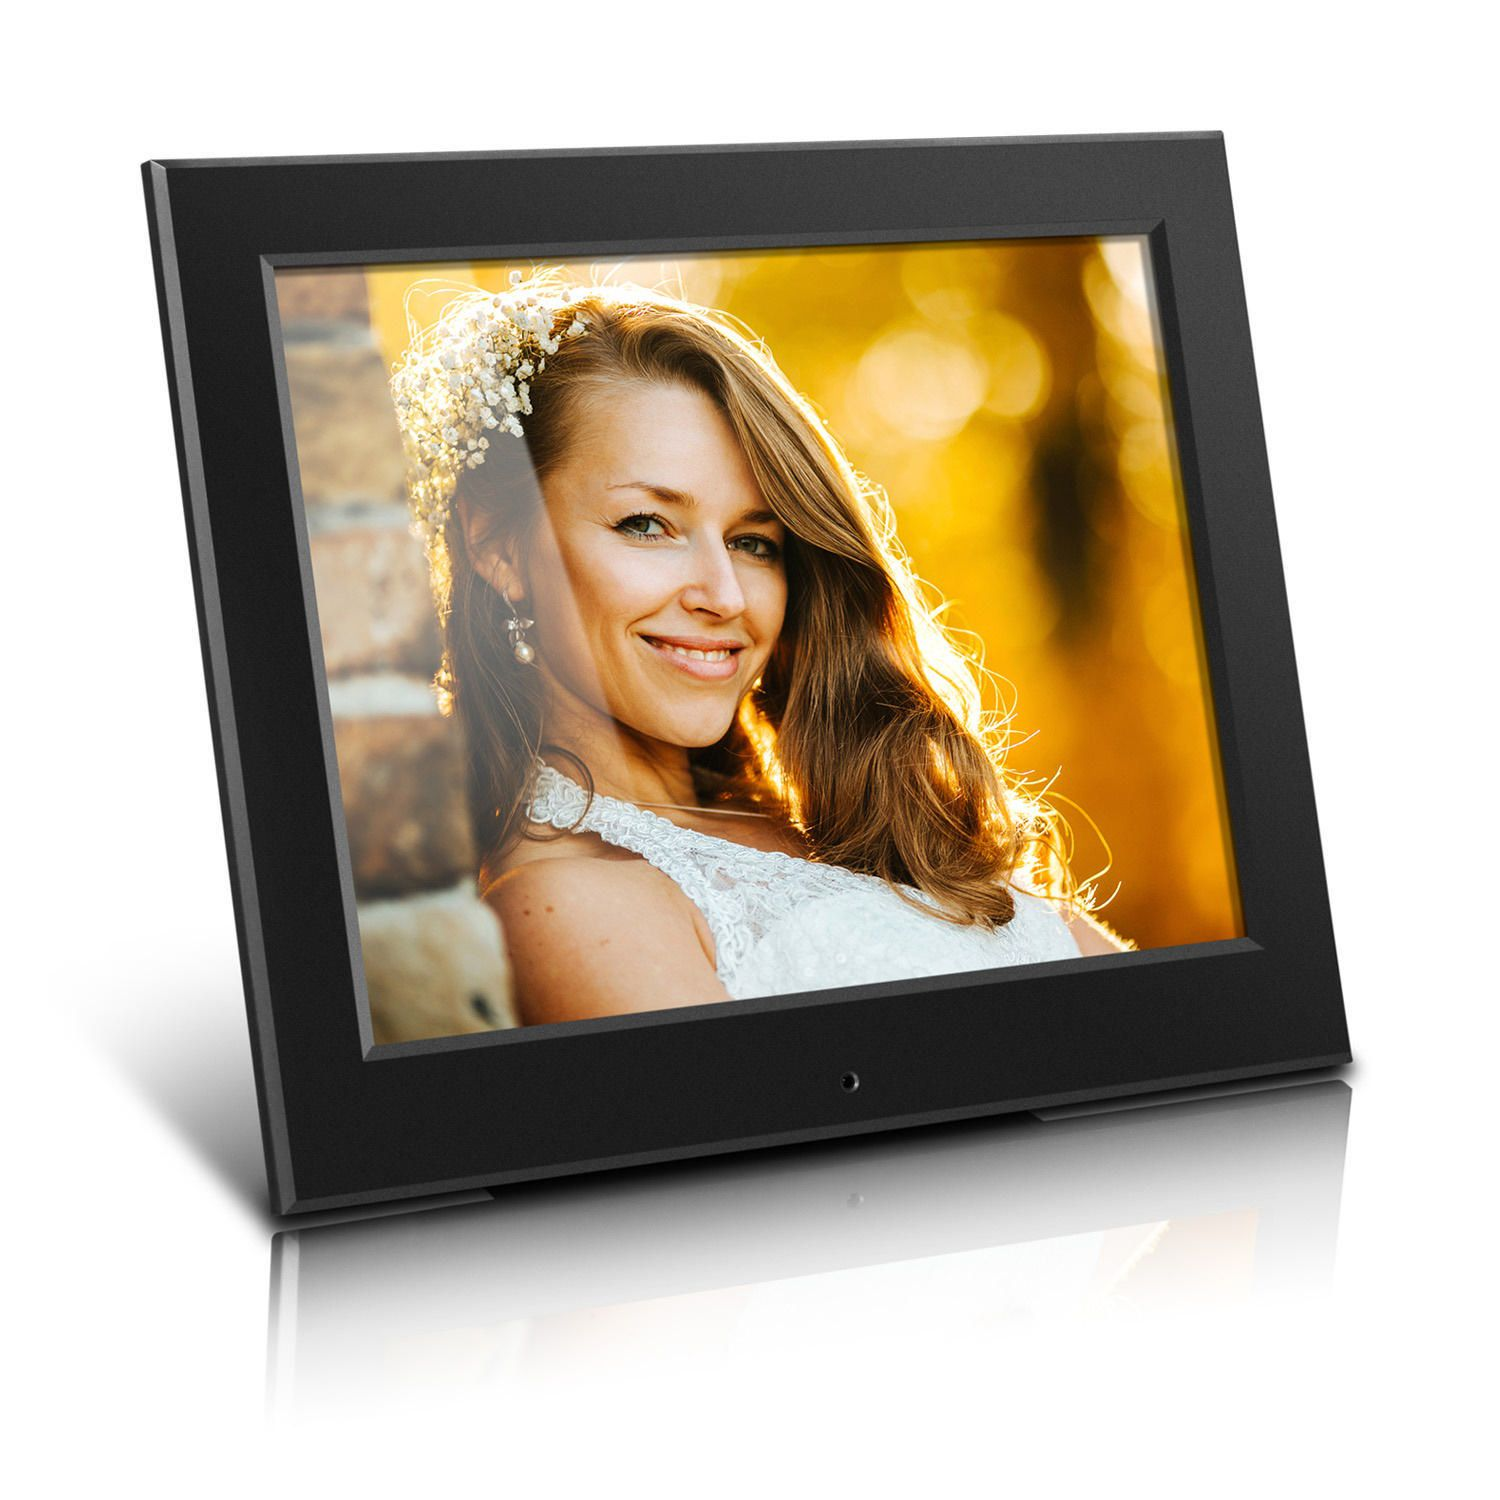 3073c8d49337 Aluratek 8 Inch Slim Digital Photo Frame with Auto Slideshow Feature -  image 1 of 2 zoomed image